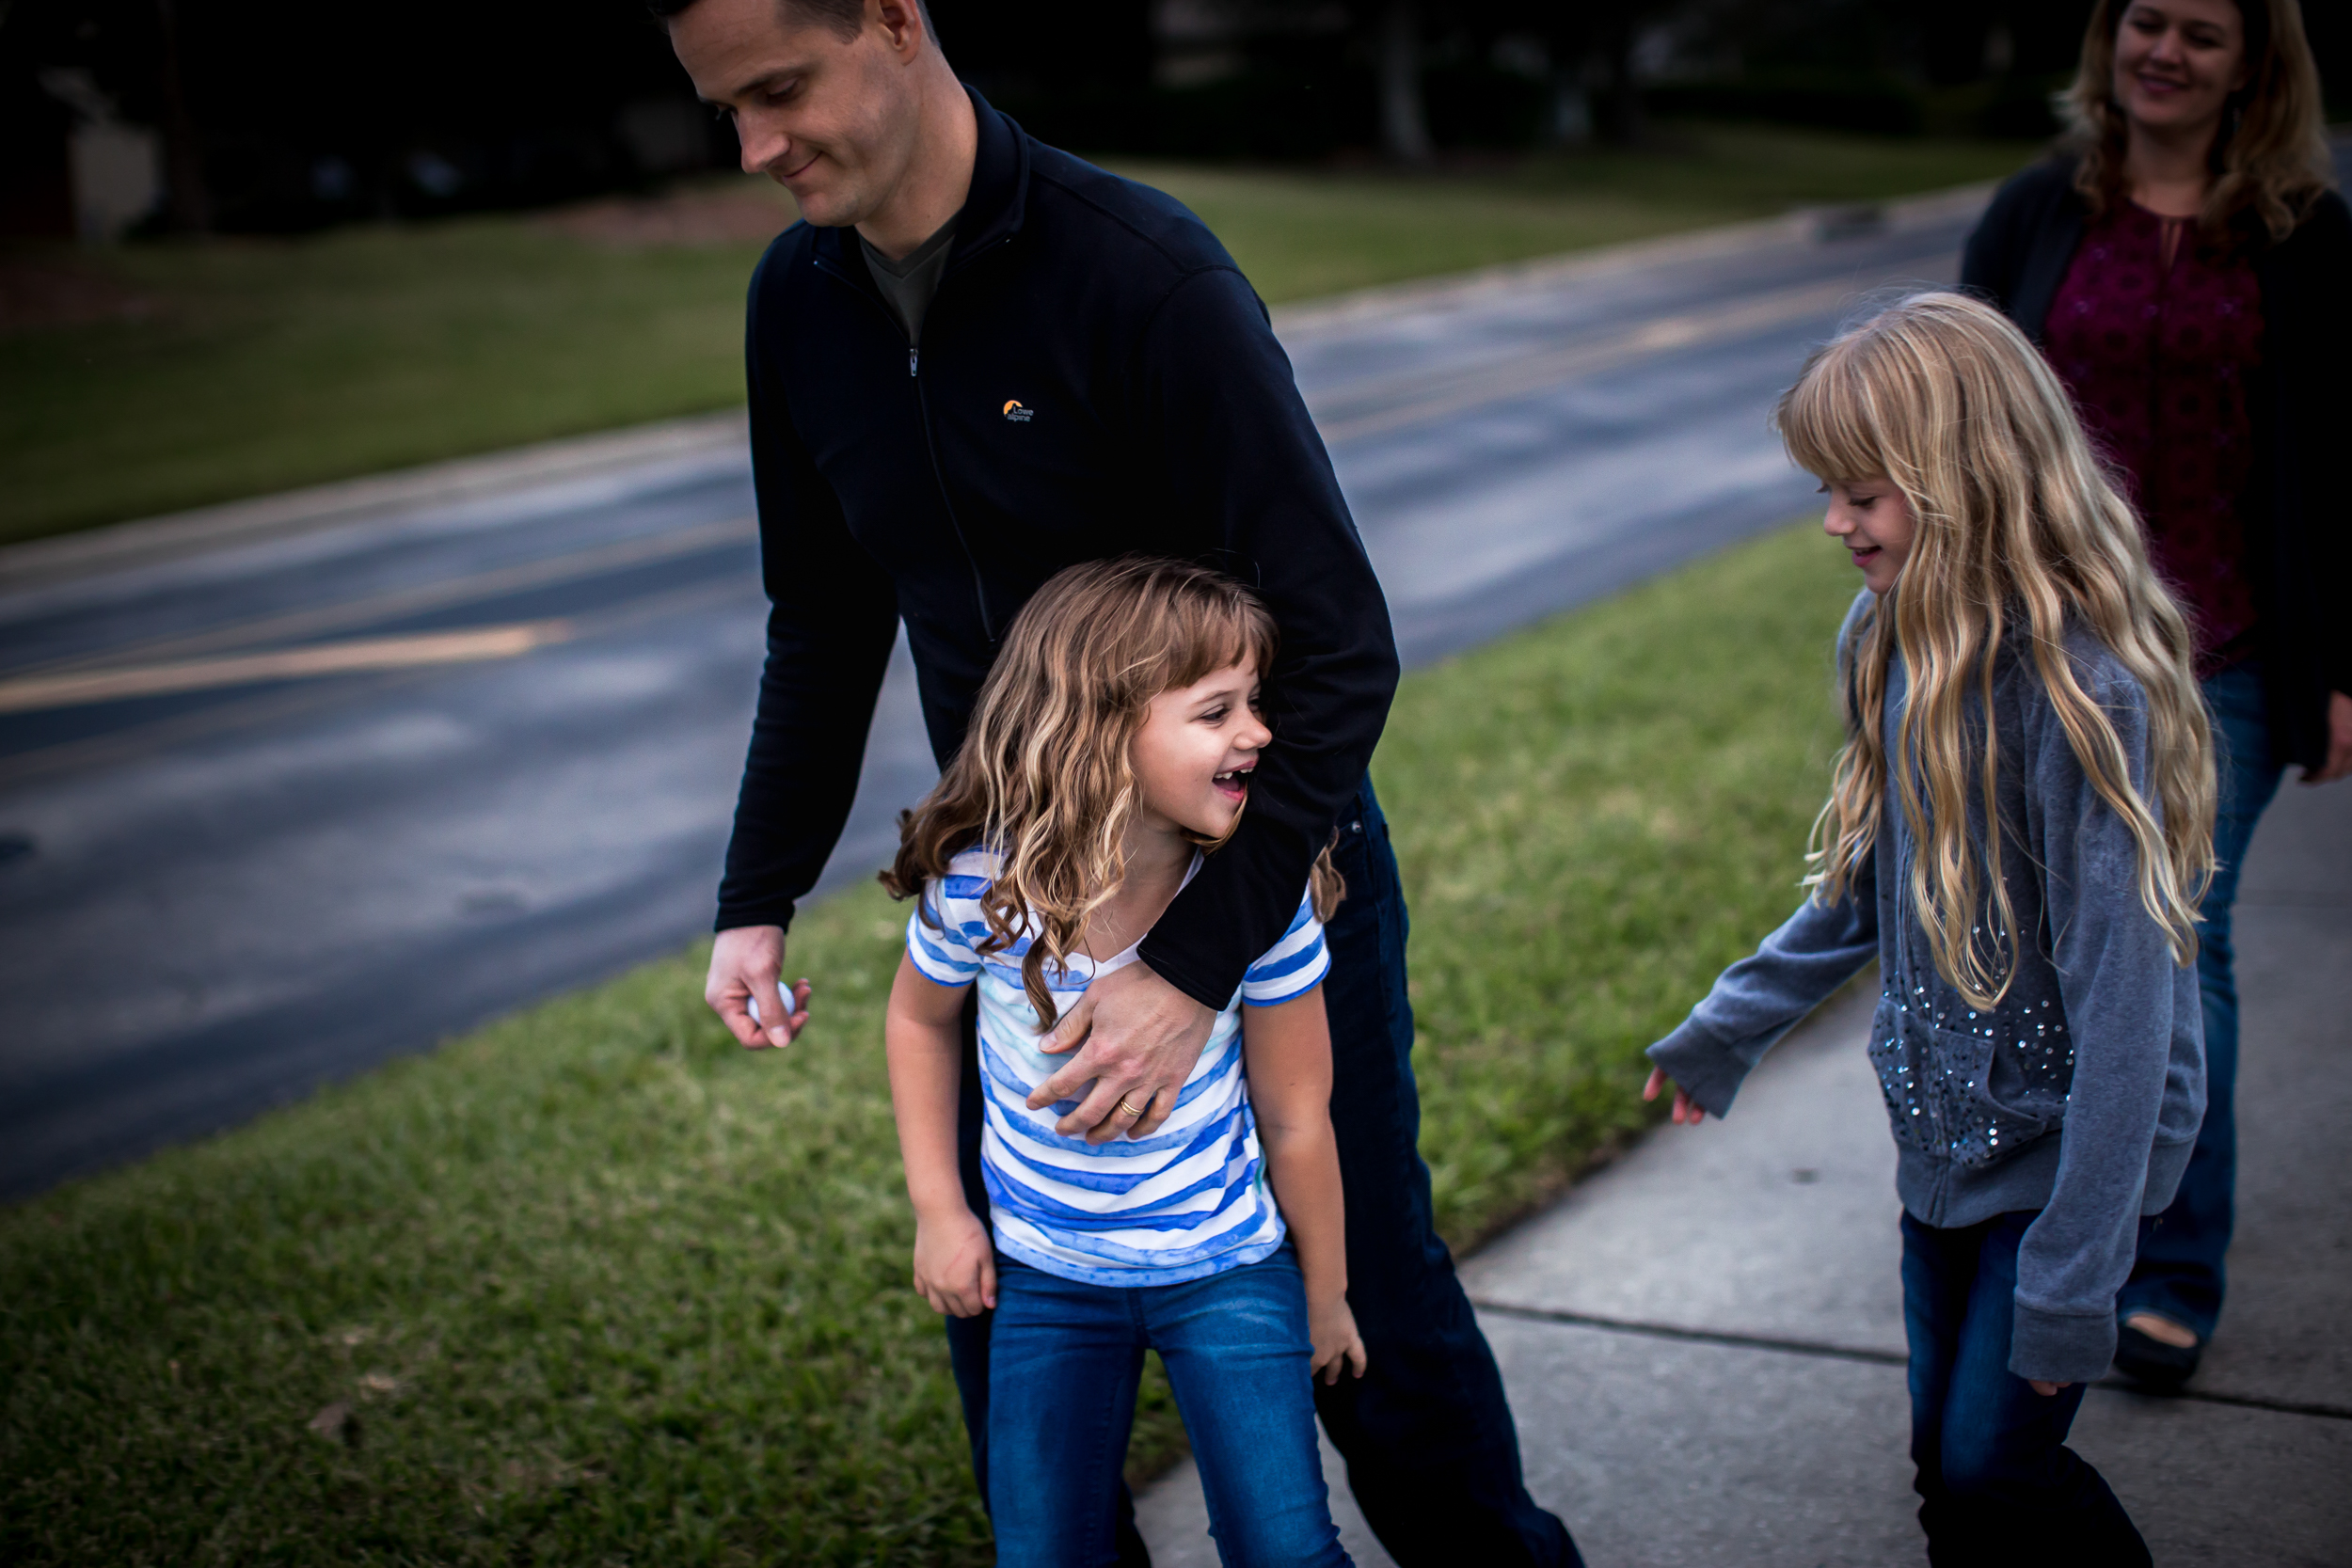 Sisters tease each other during a family walk after dinner during family photography session in Winter Garden, Florida.